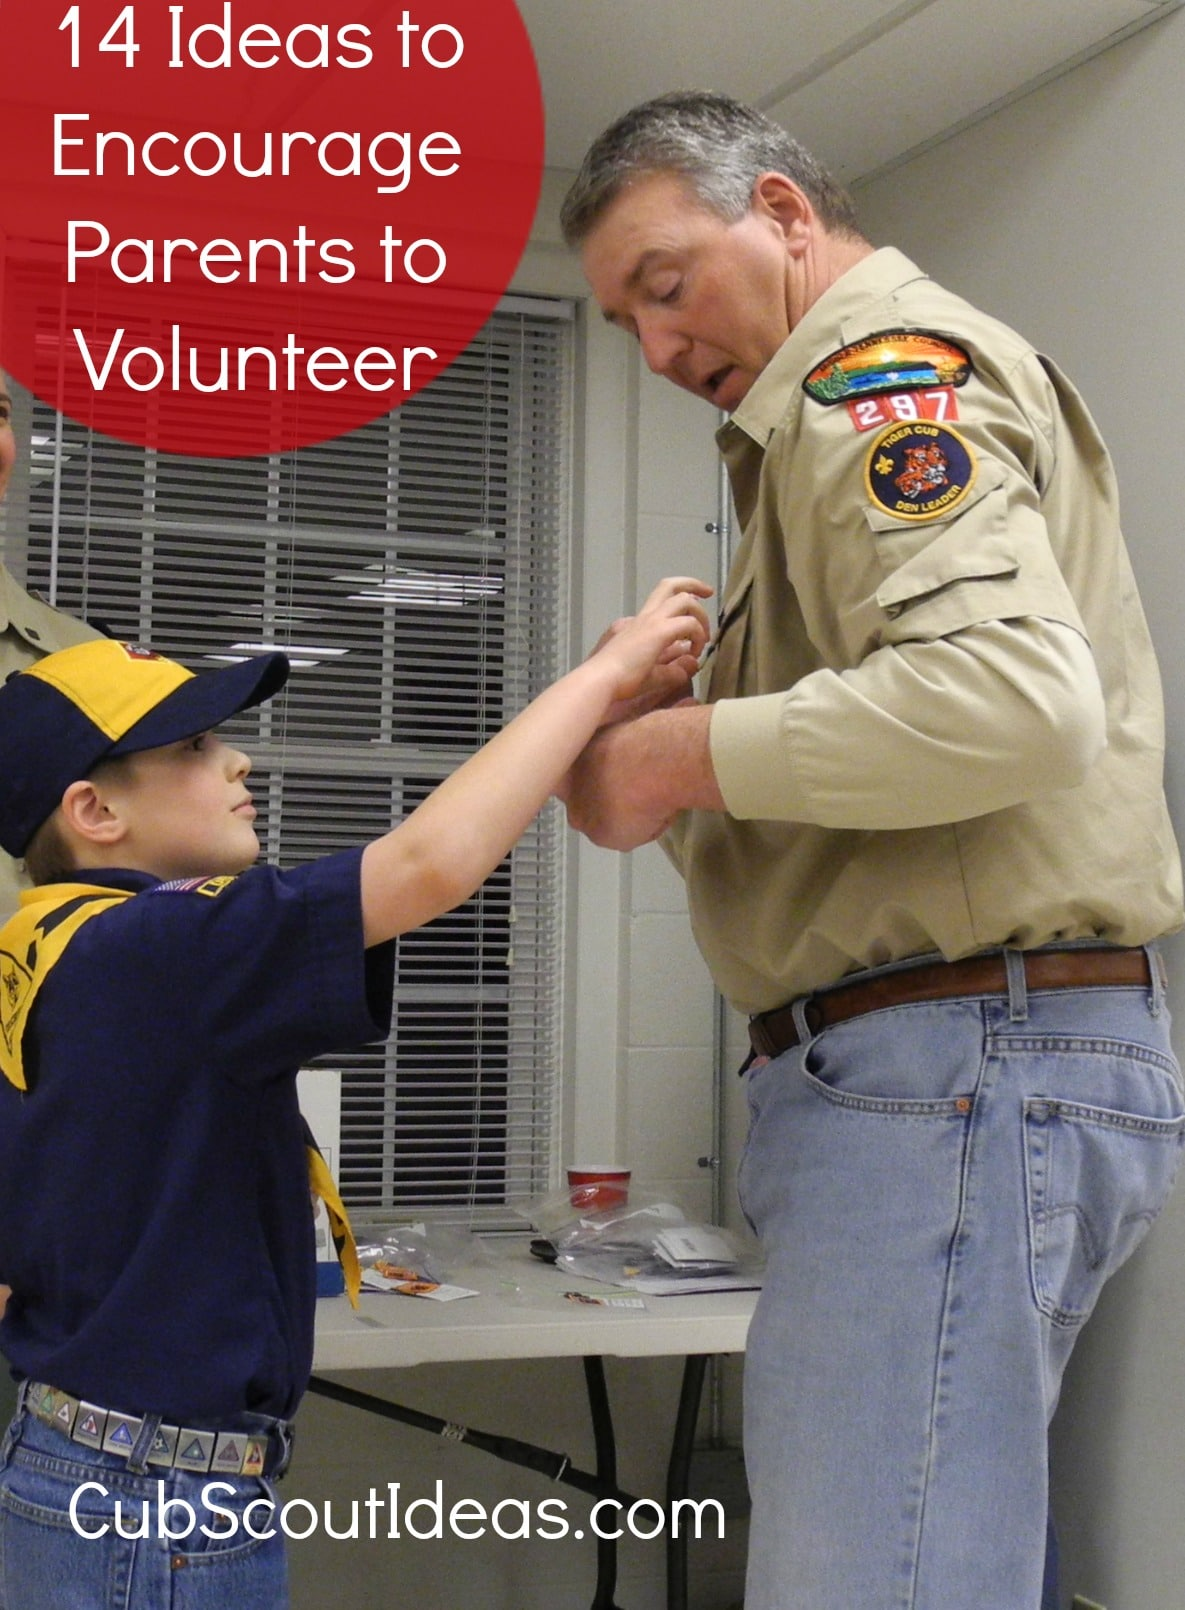 Cub Scouts:  Getting Parents Involved